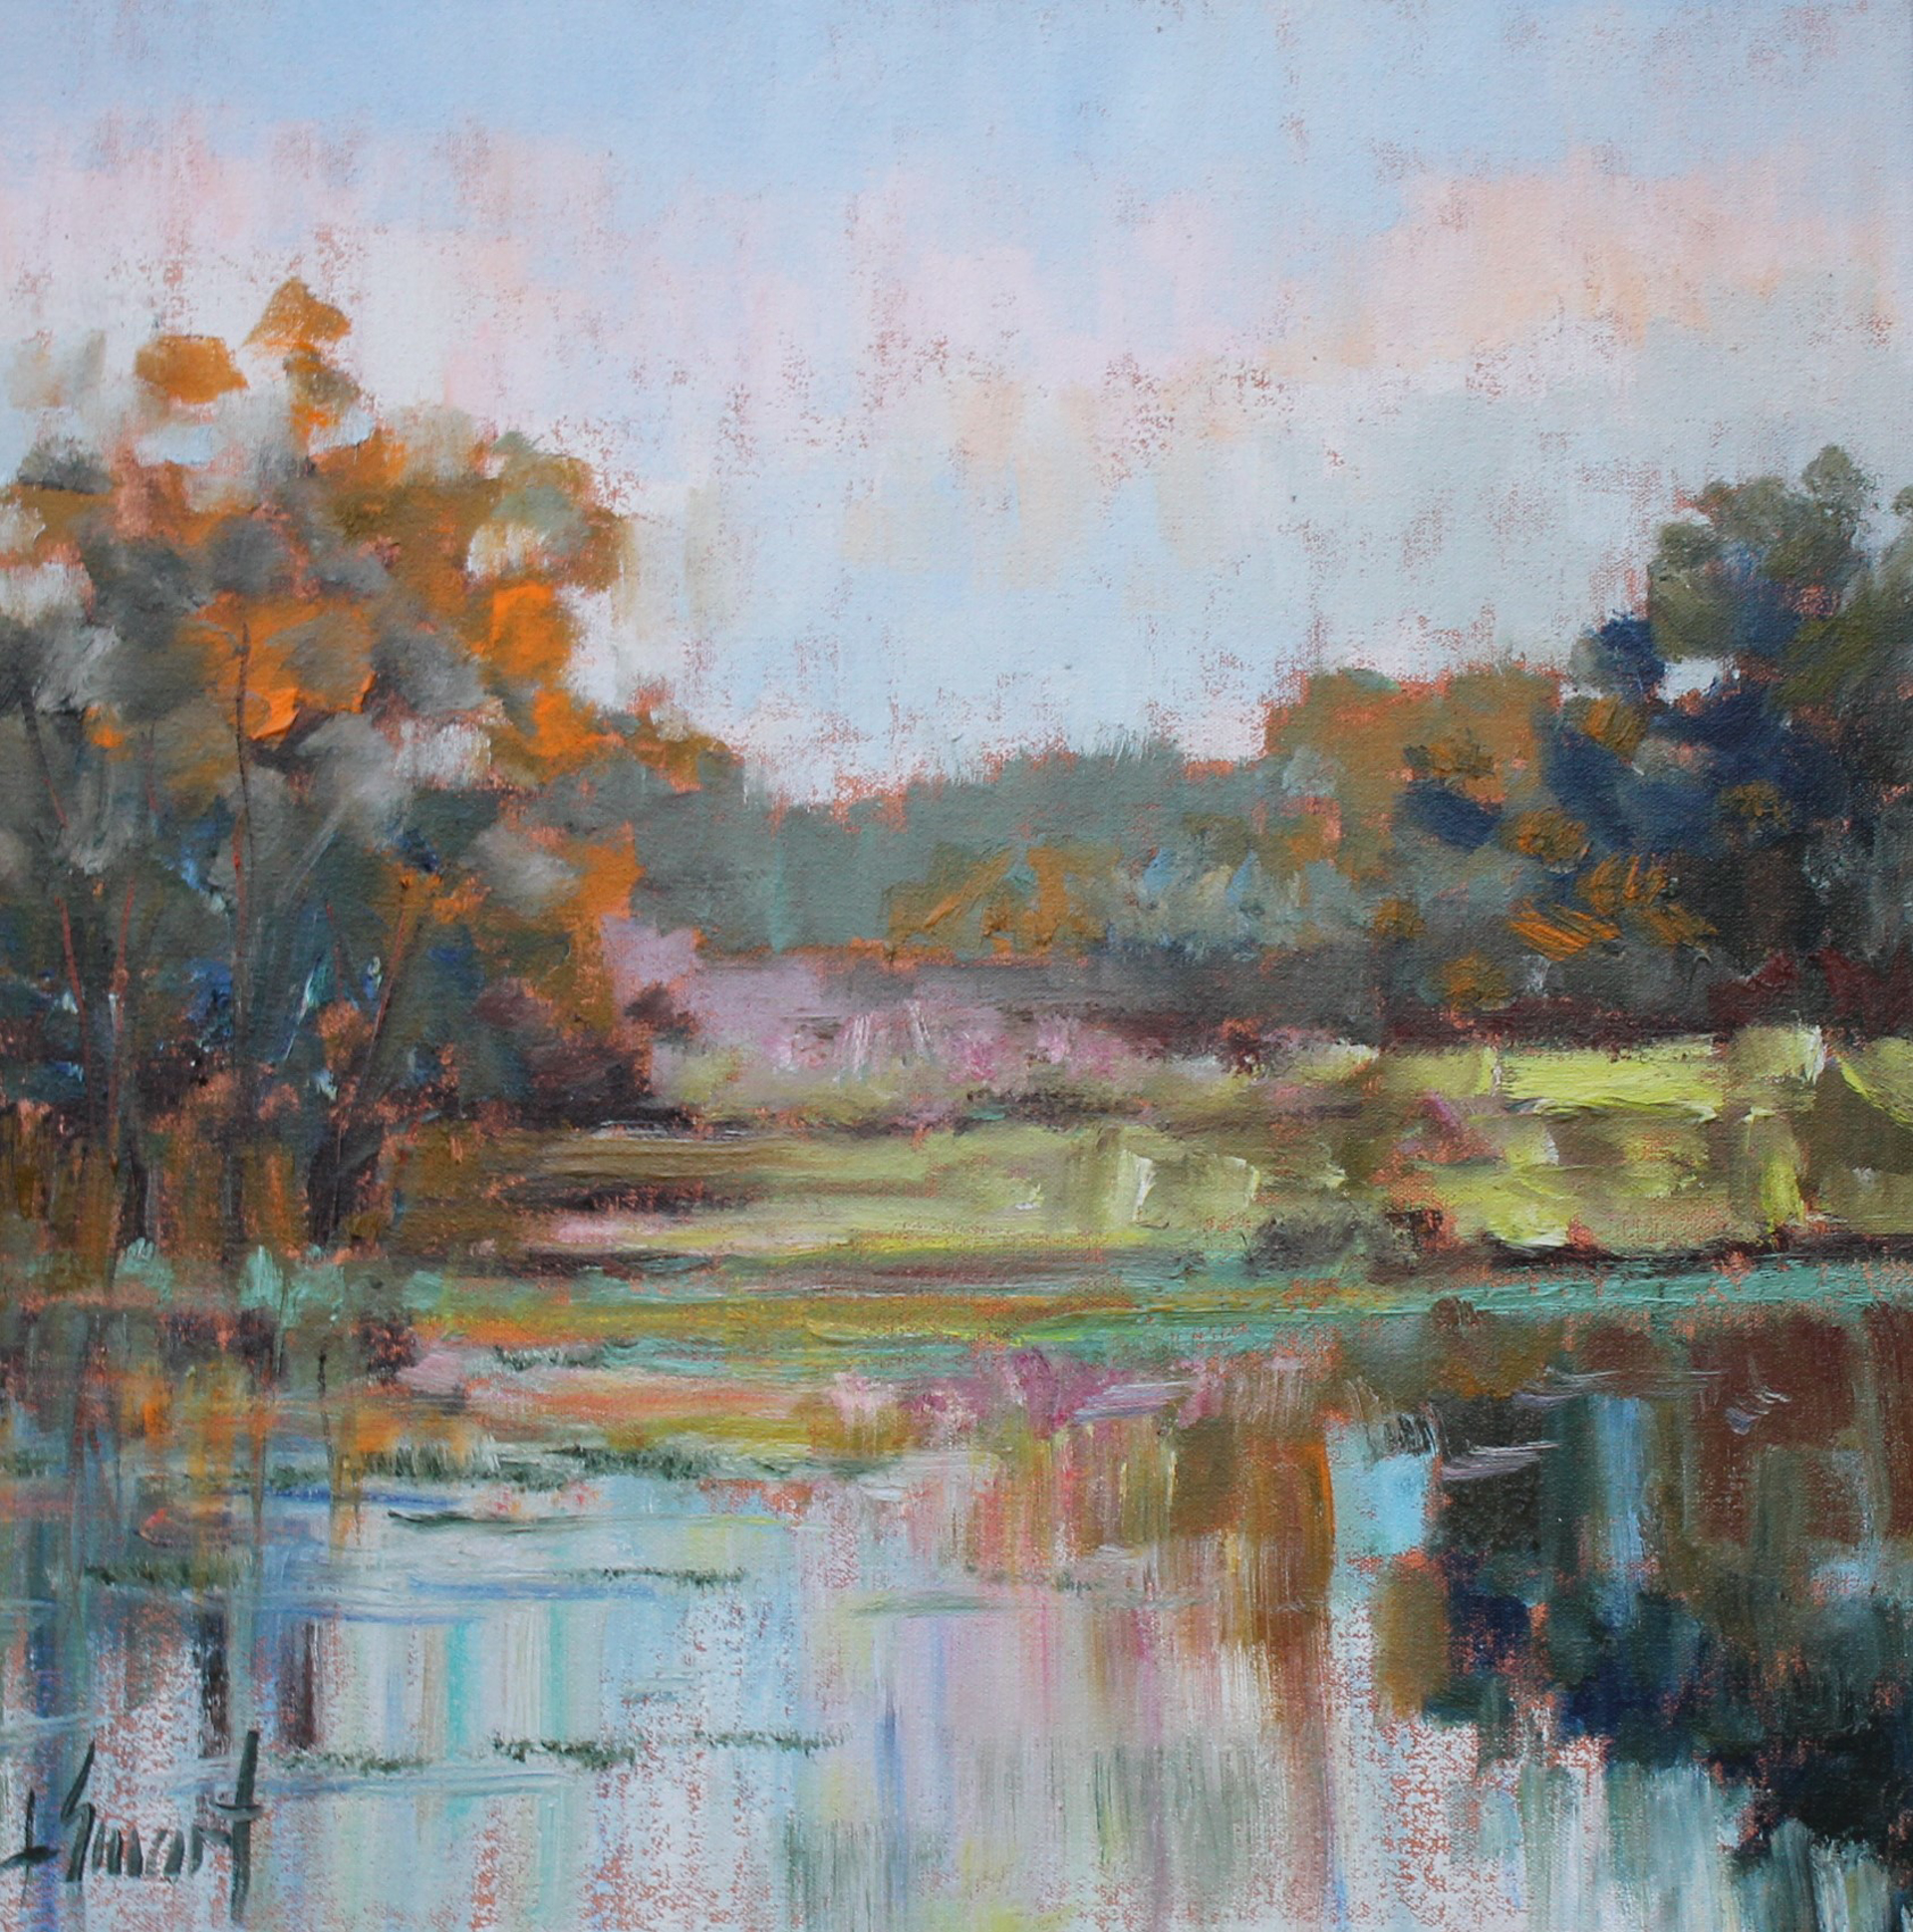 Afternoon Reflections by Libby Smart